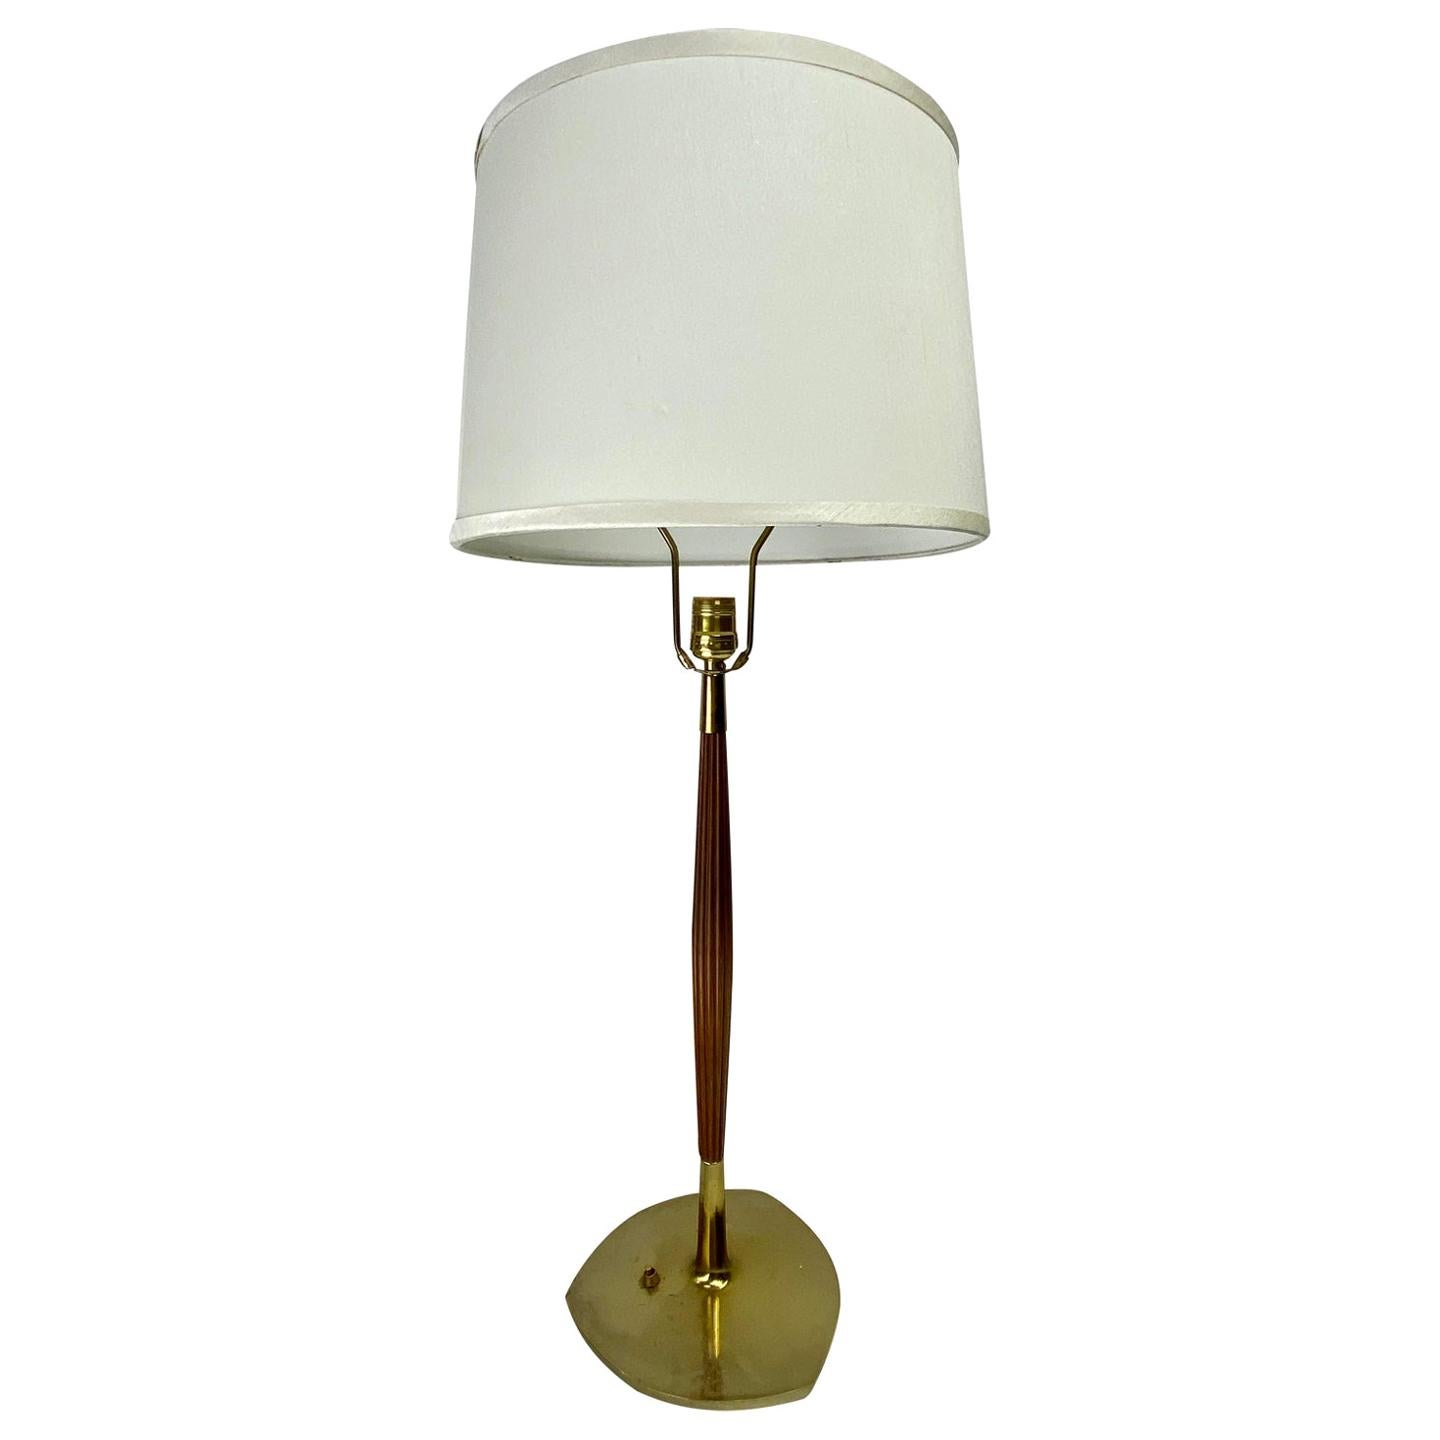 Mid-Century Modern Walnut & Brass Table Lamp W/ Shade Attributed to Thurston